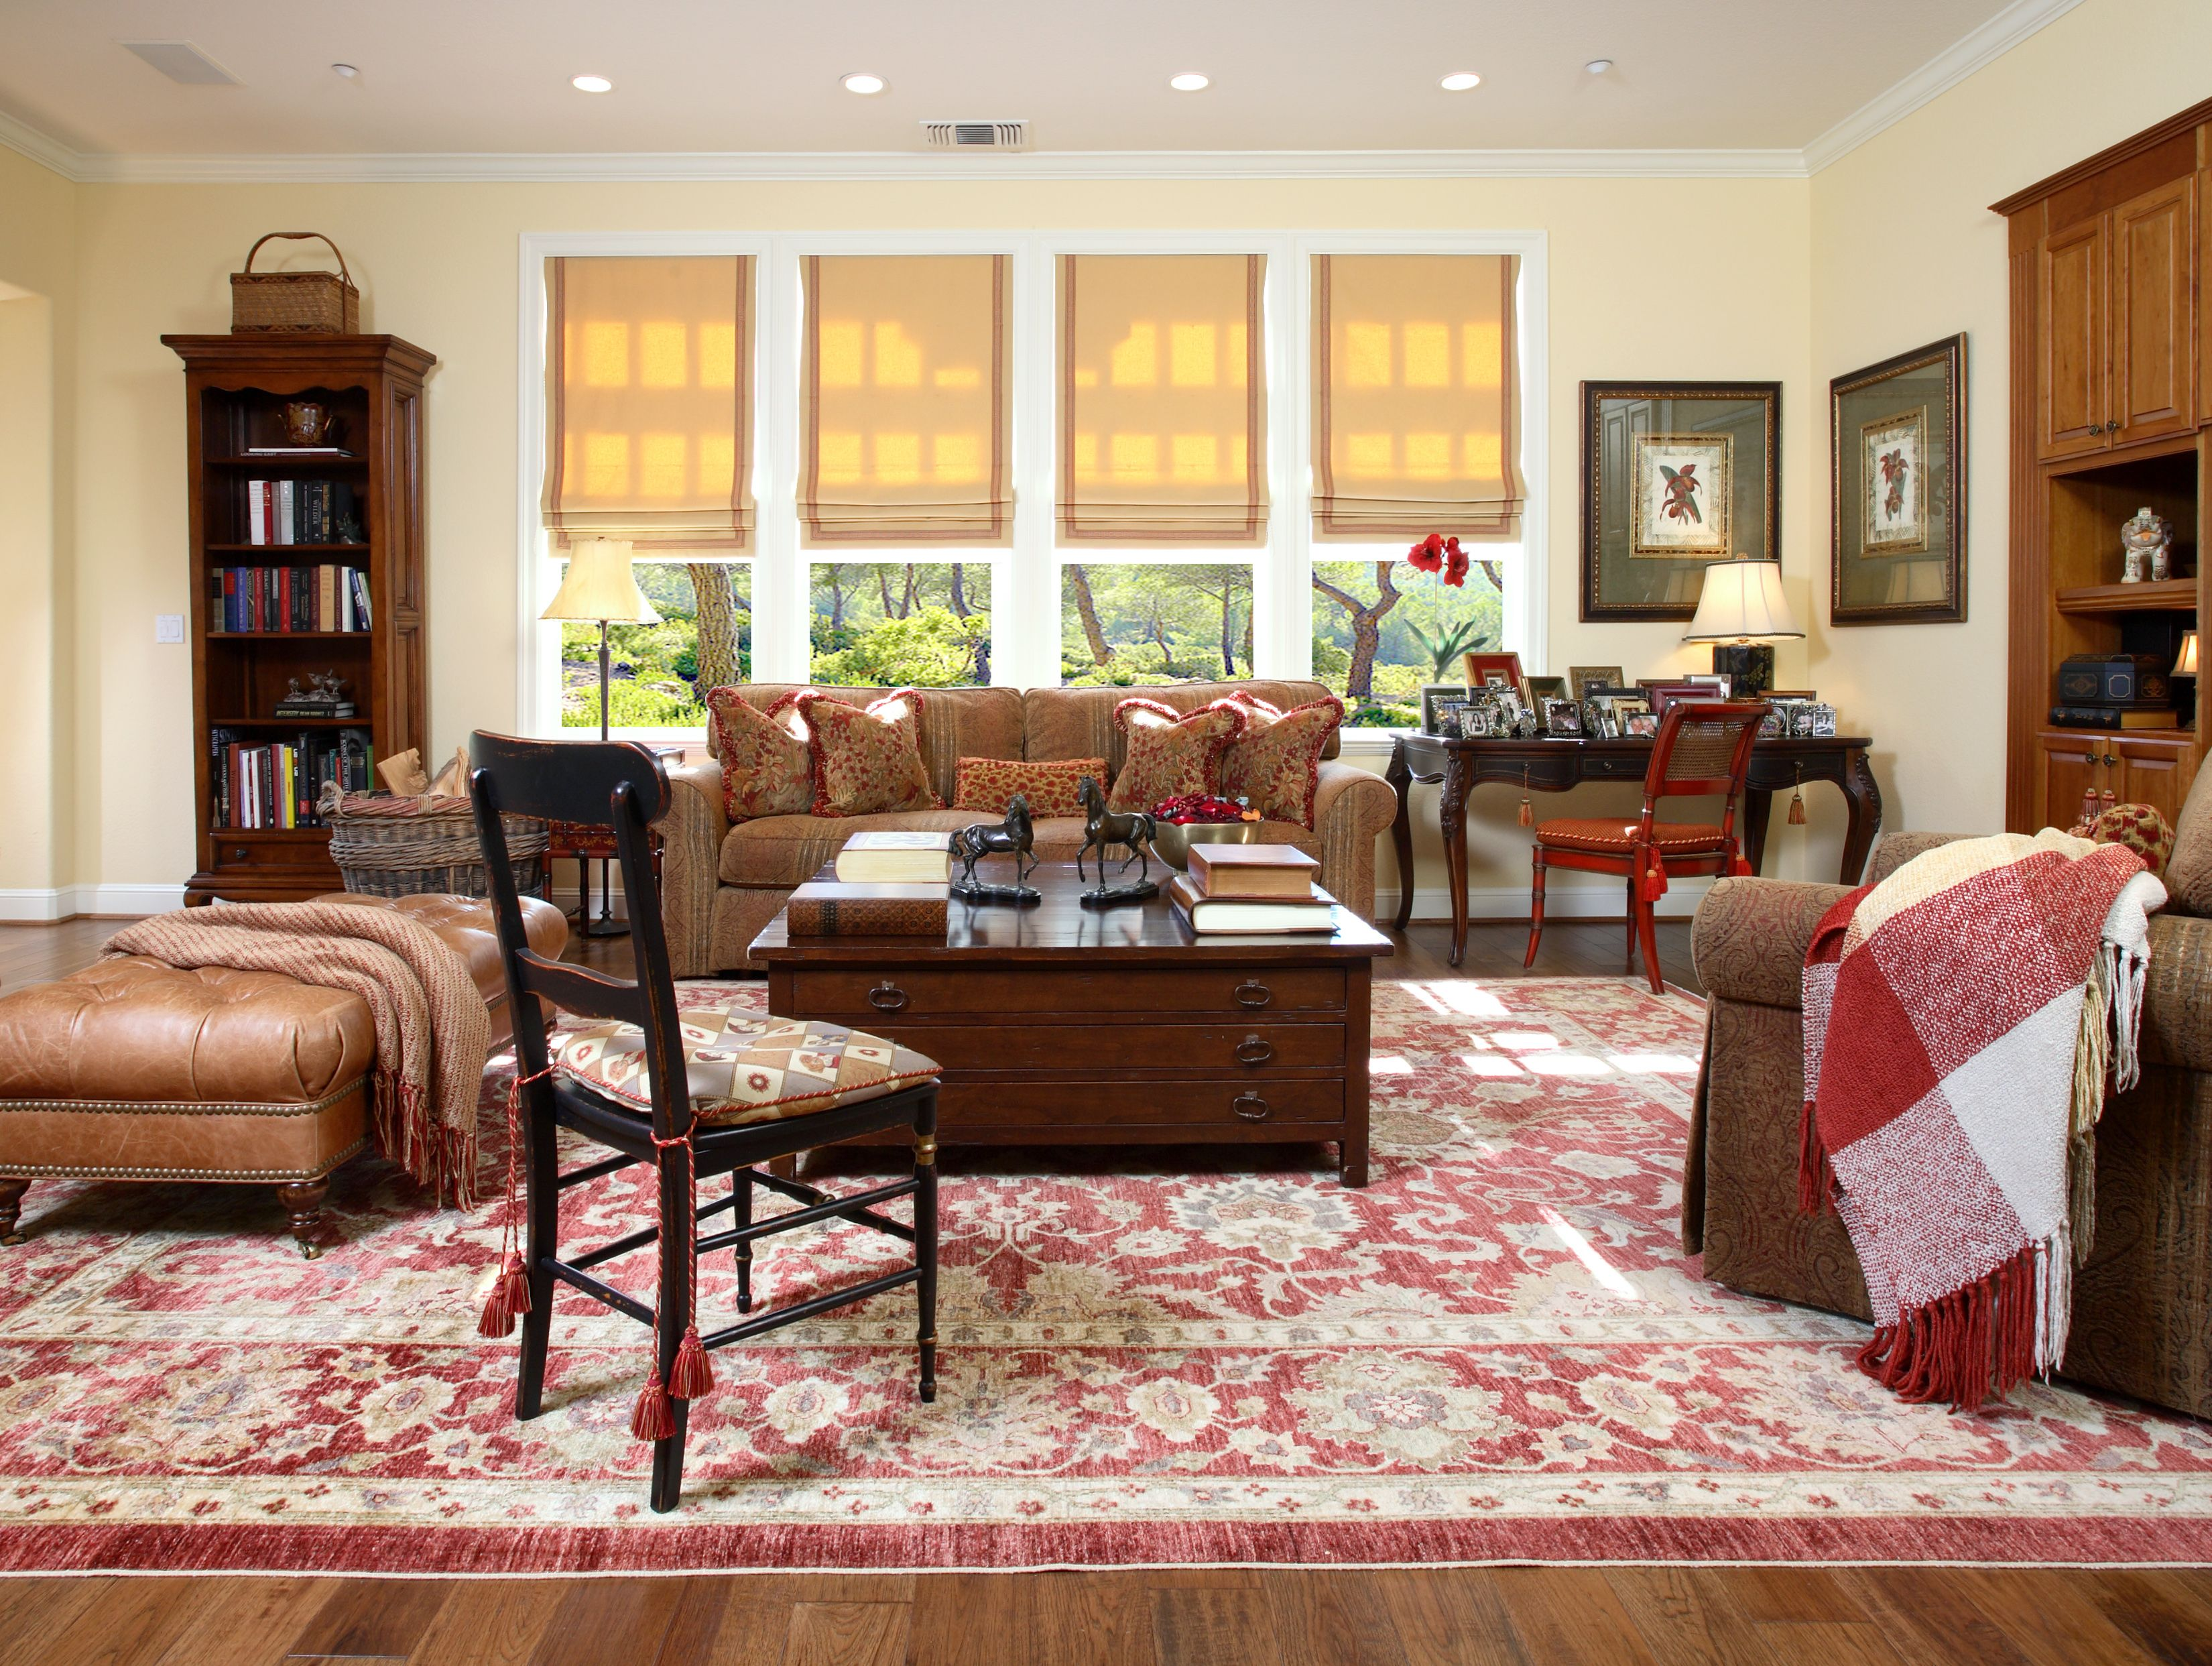 SUZANNE MYERS ELITE DESIGN: A cozy, comfortable family room, almost indestructible for small children at play!